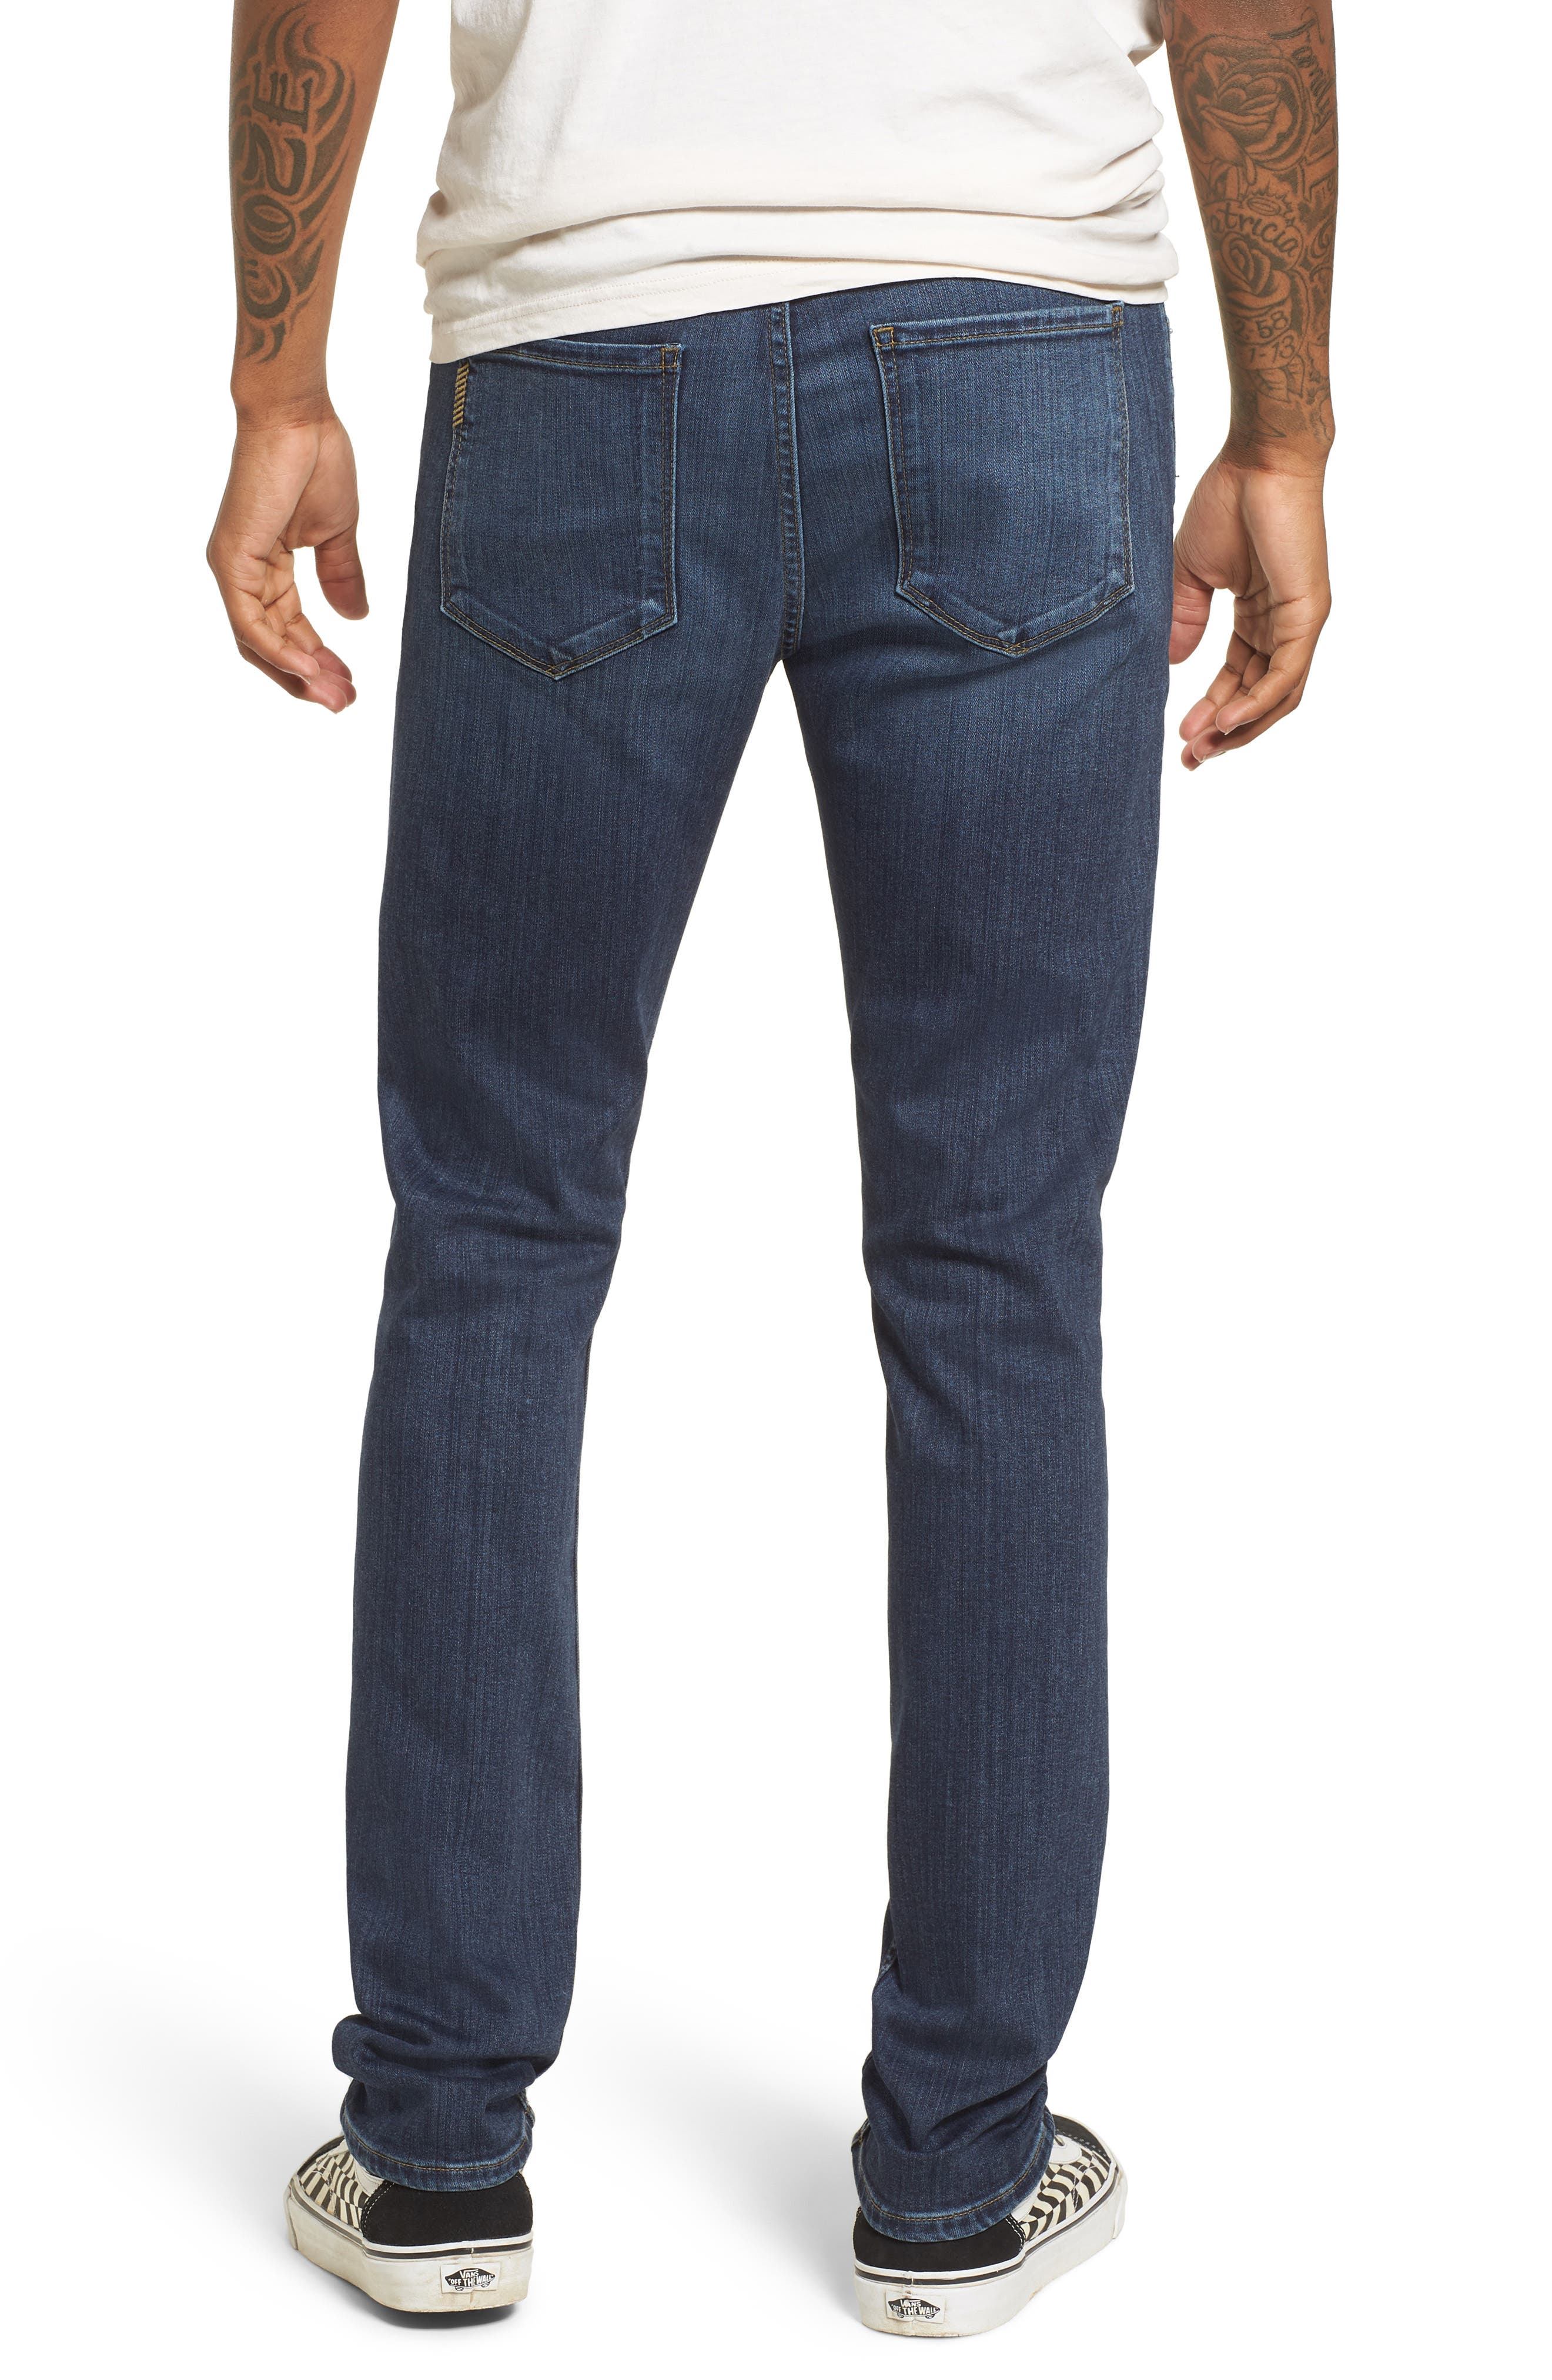 Transcend - Croft Skinny Fit Jeans,                             Alternate thumbnail 2, color,                             FULTON